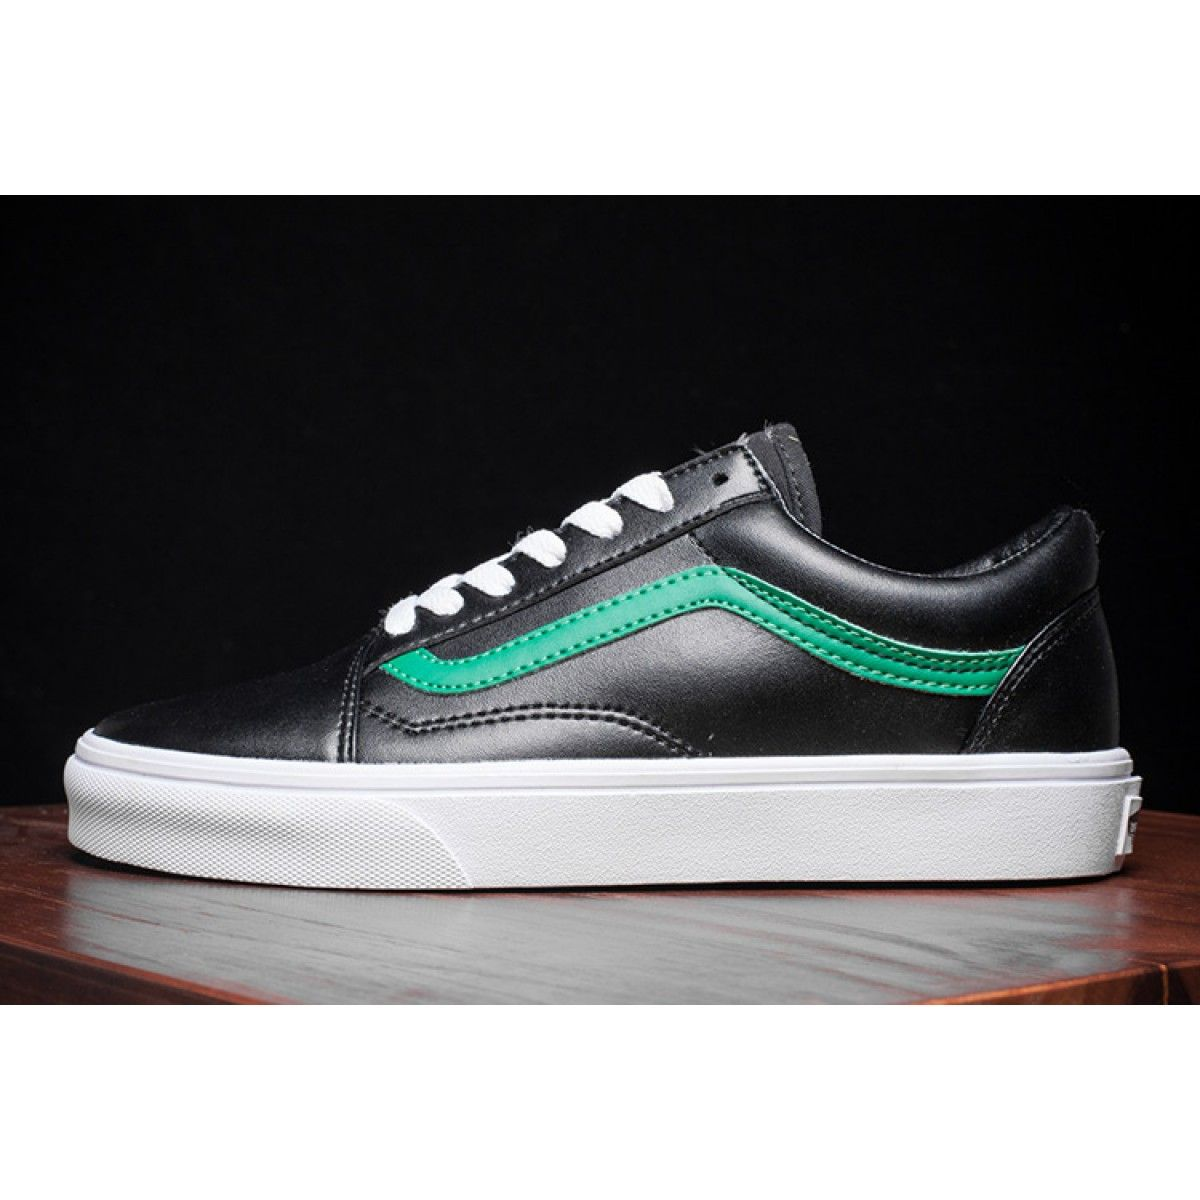 2e80872a12d3b3 Black Leather Vans Old Skool Green Stripe Skate Shoes  Vans